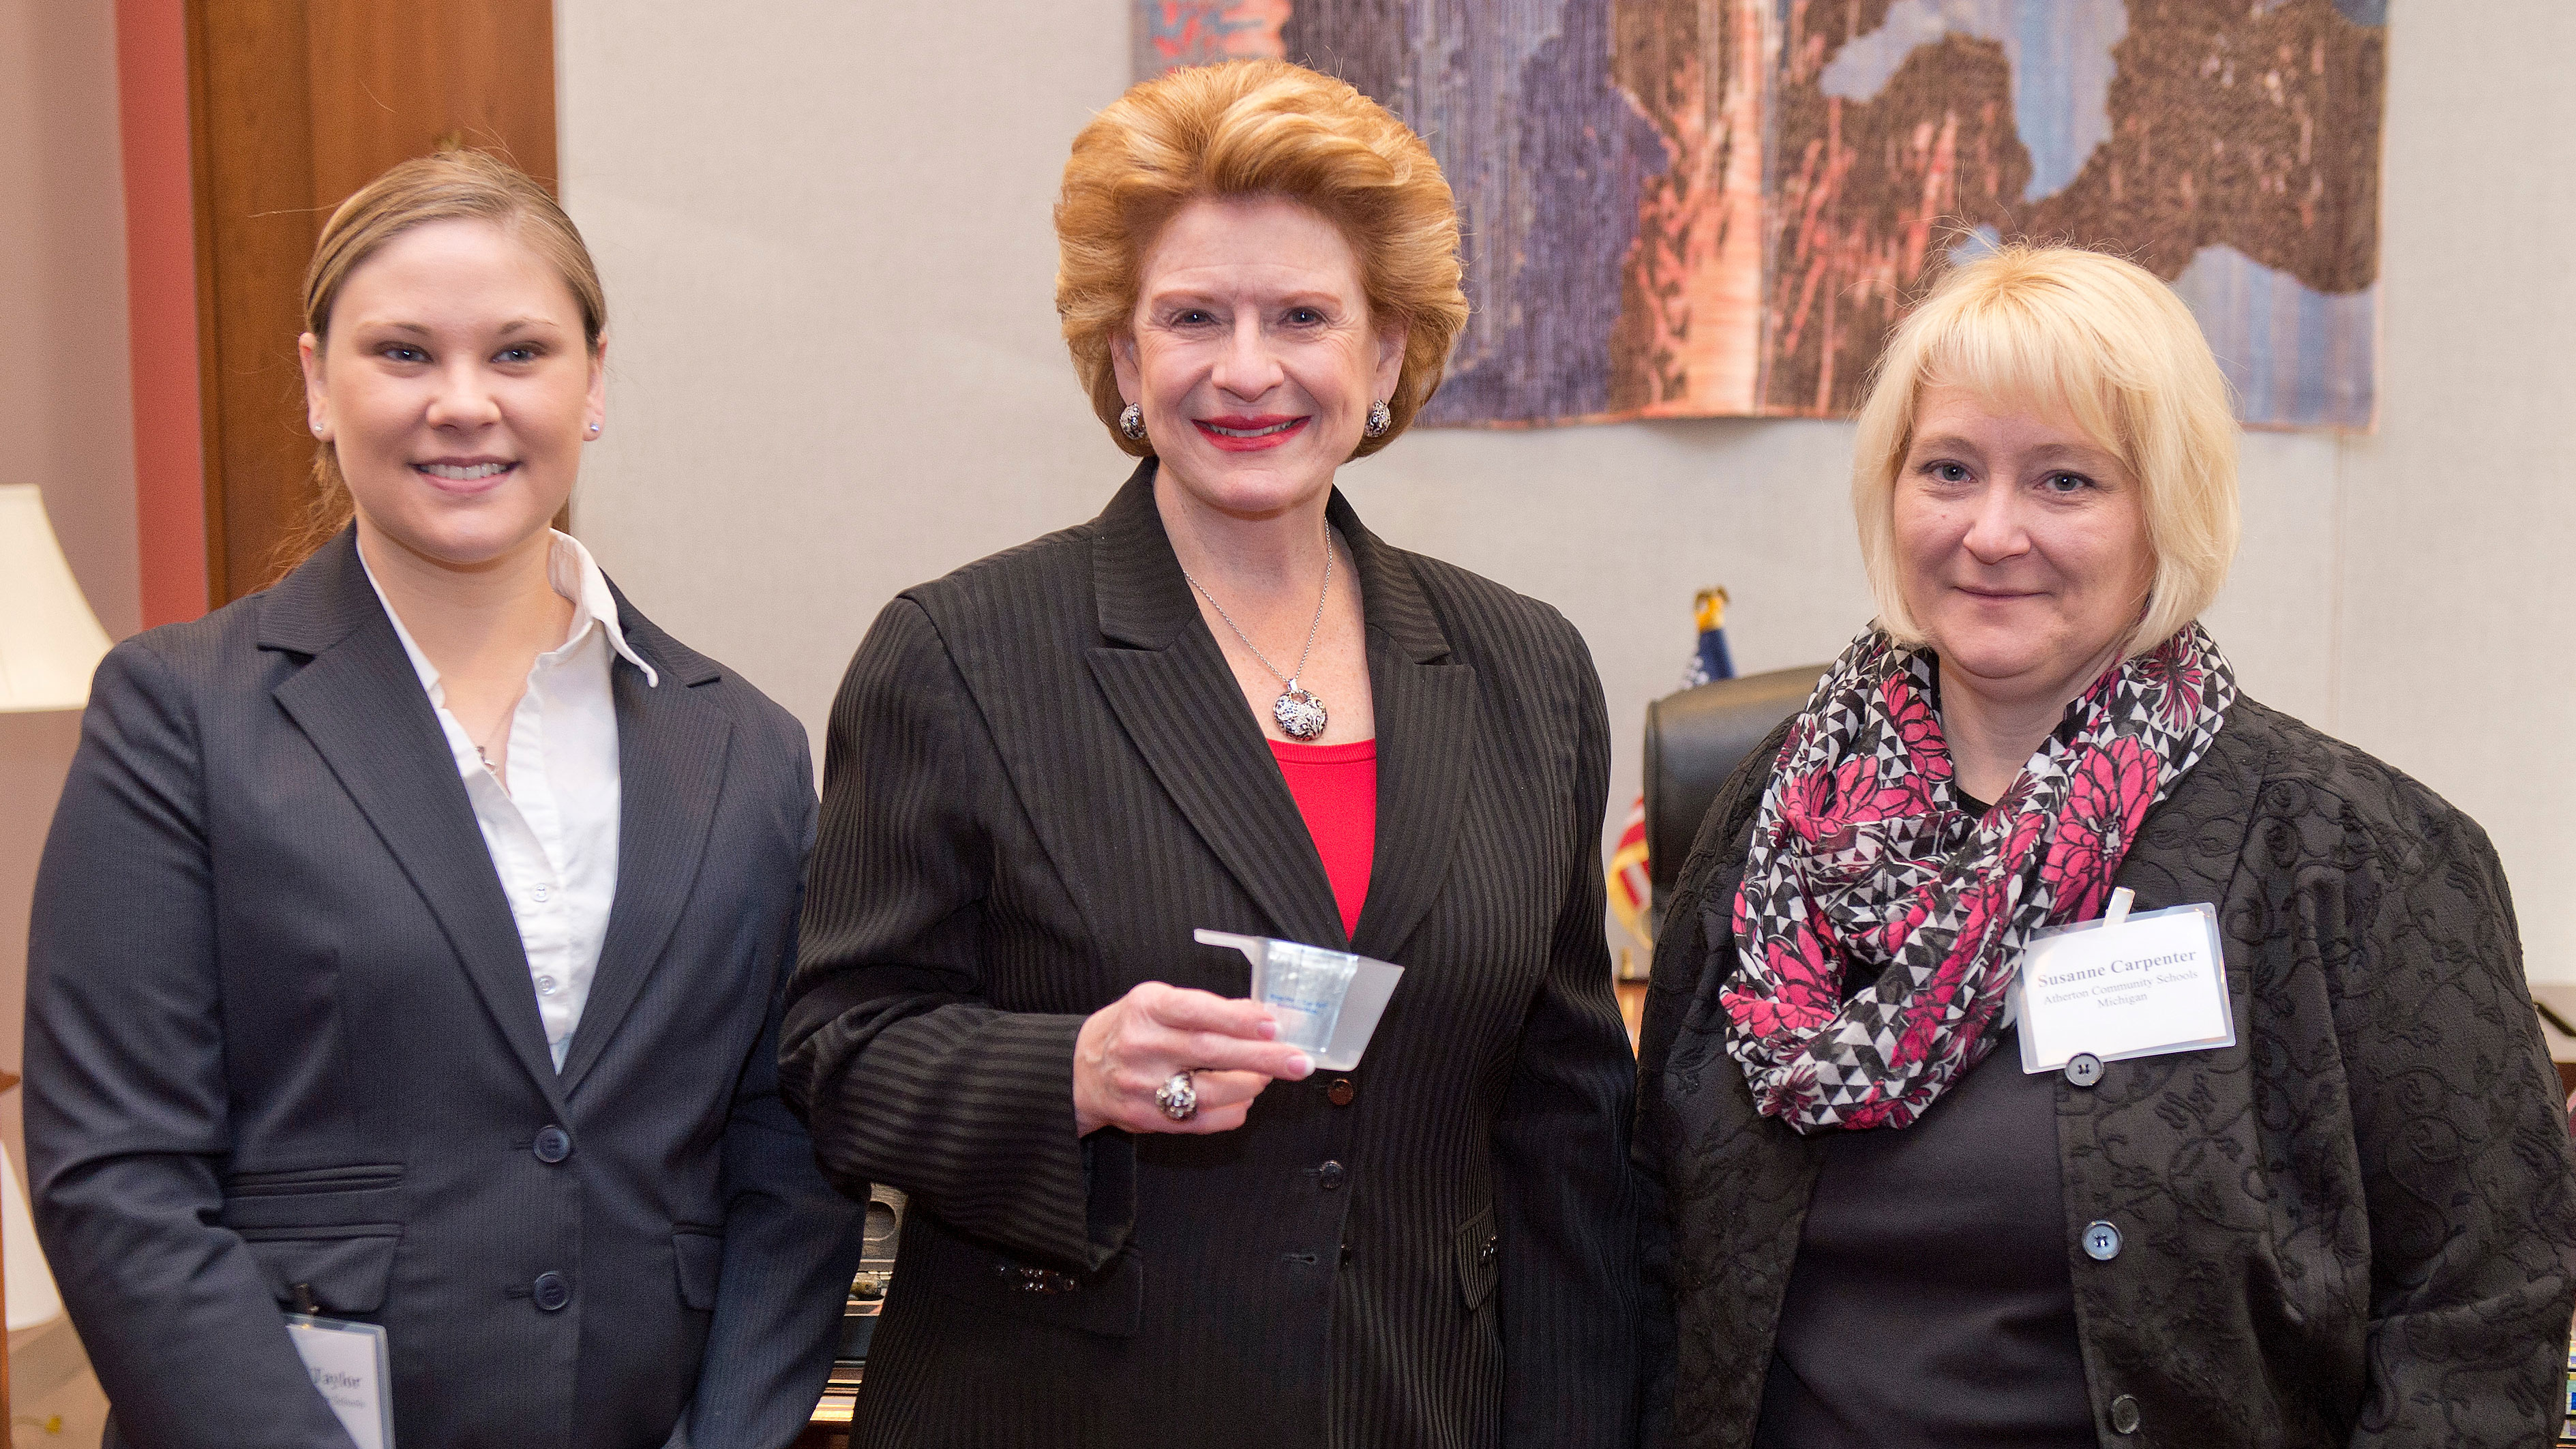 Food service director Bethany Taylor (left) and principal Susanne Carpenter (right), representing Atherton Community Schools in Michigan, show Senator Debbie Stabenow (D-MI) the half-cup portion that students must take of fruits or vegetables with every lunch. A recent survey found that 91 percent of parents nationwide support requiring schools to include a serving of fruits or vegetables with every meal.